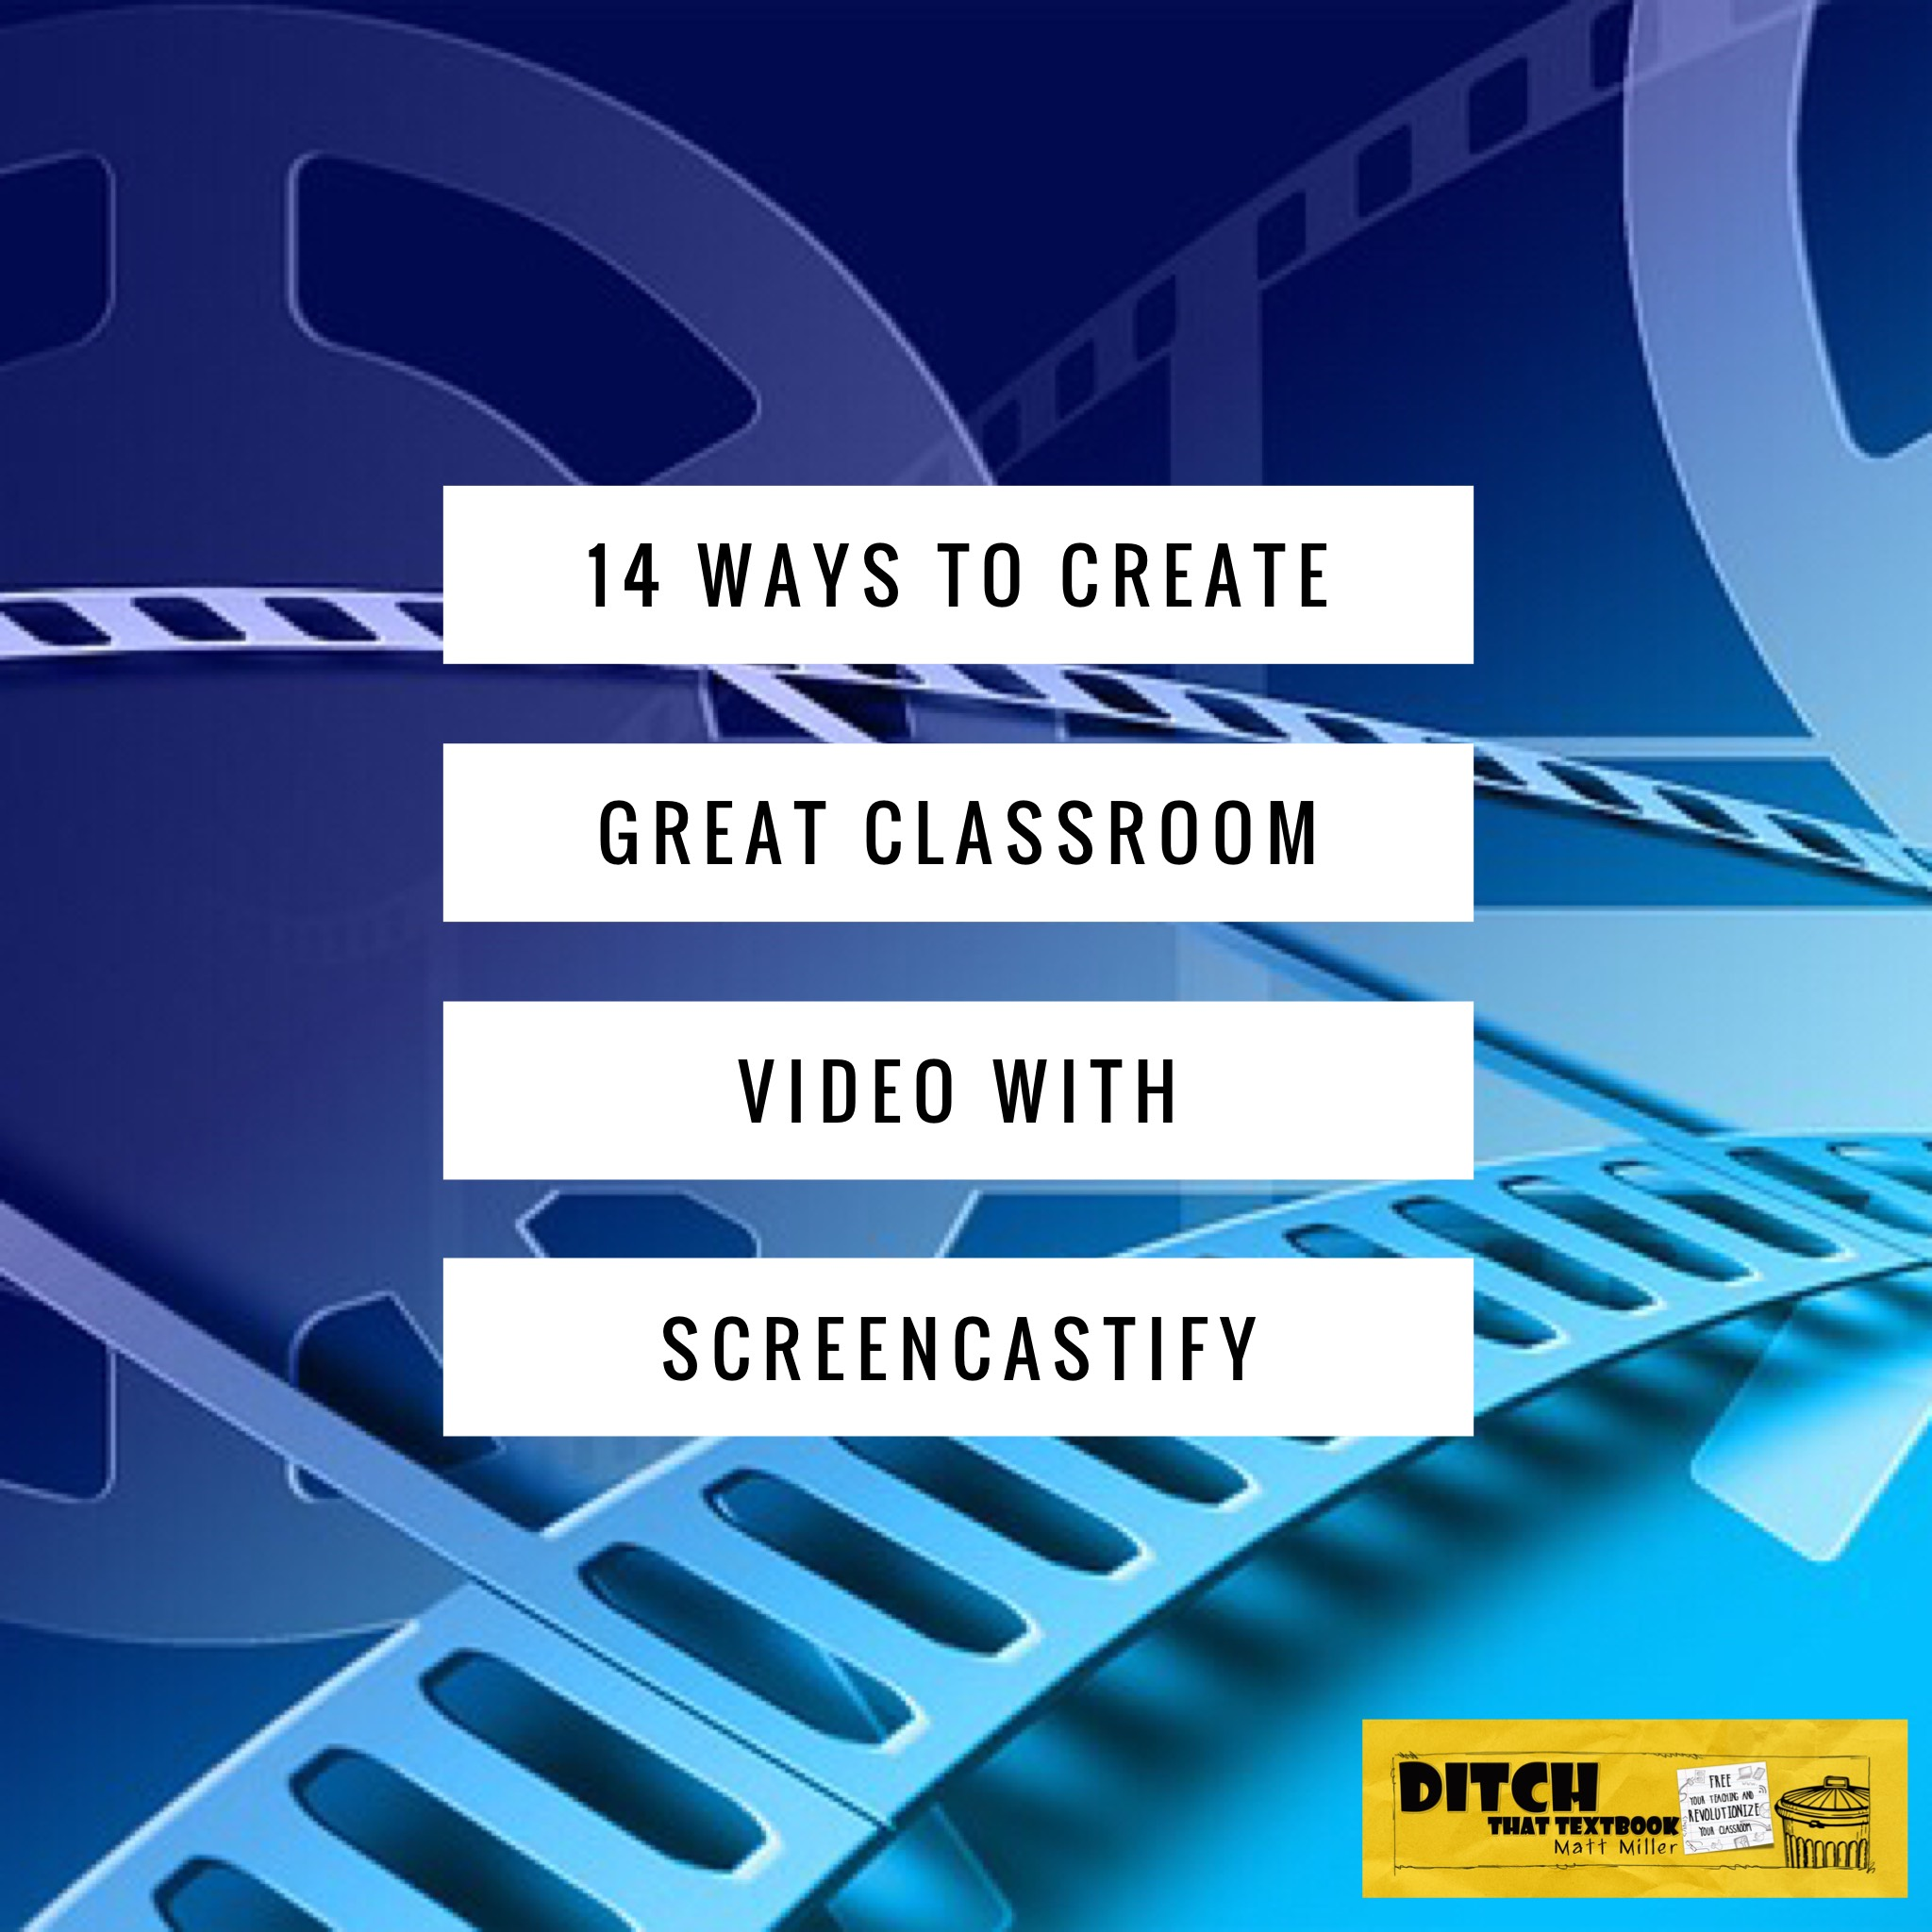 24 ways to create great classroom video with Screencastify